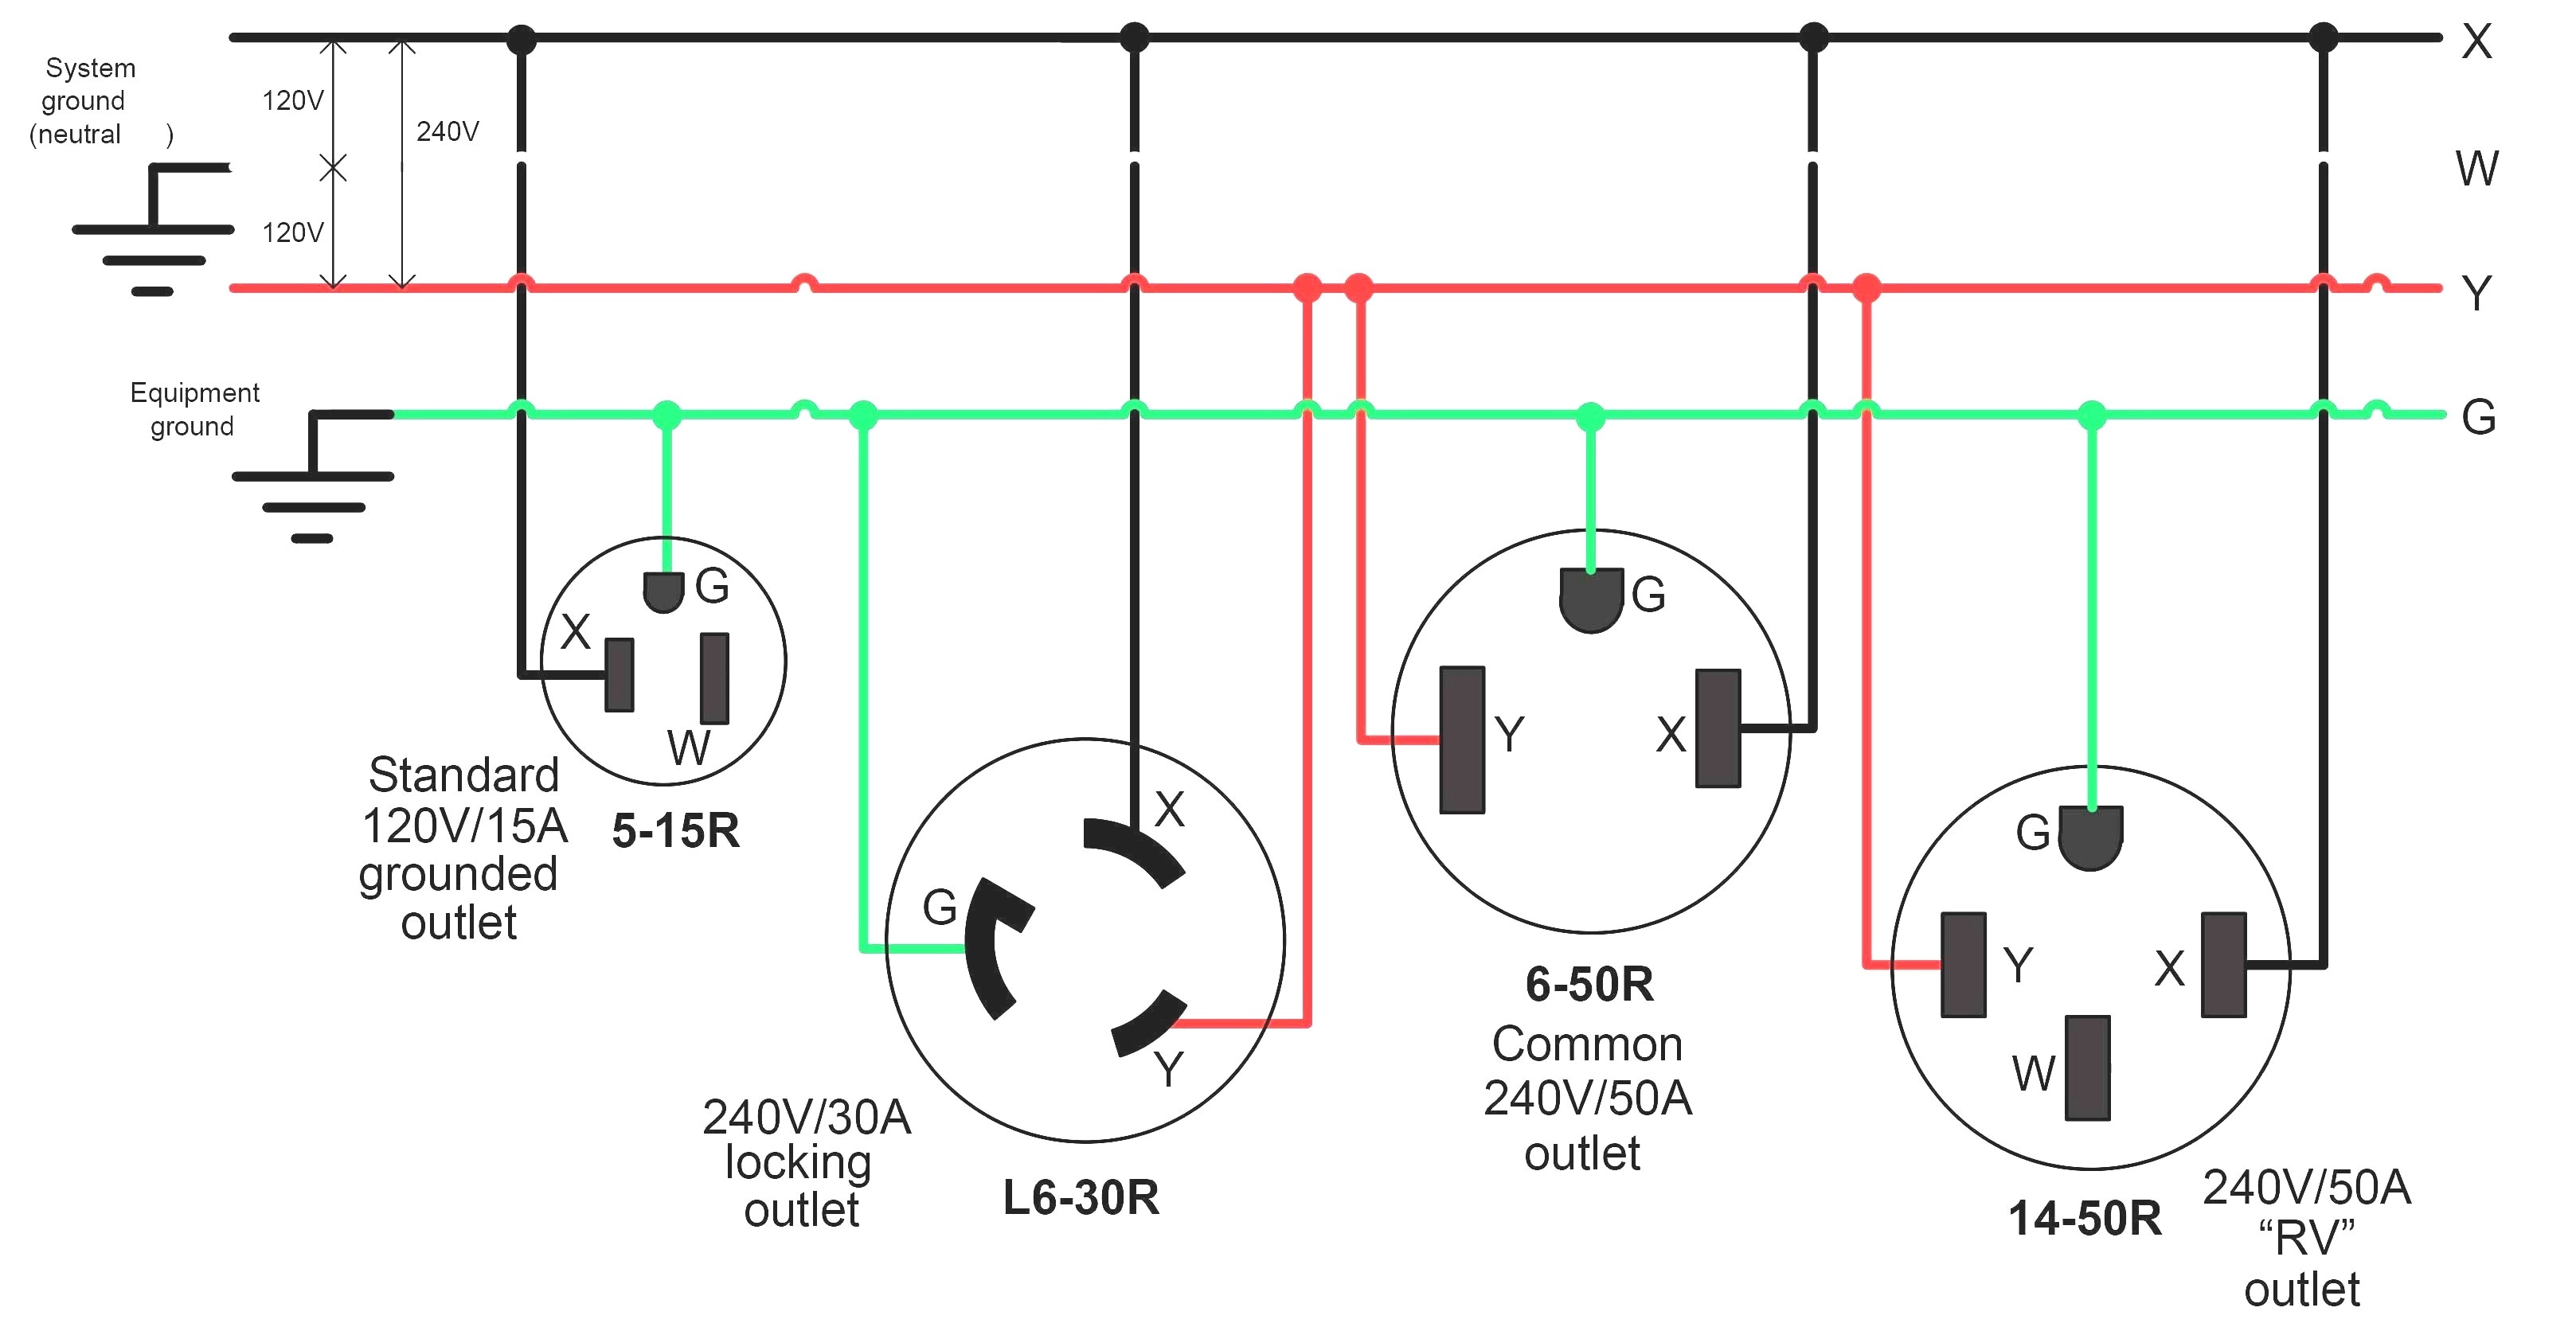 wiring diagram for 3 wire 220 volt outlet on 3 phase 460 motor 230 6 wire